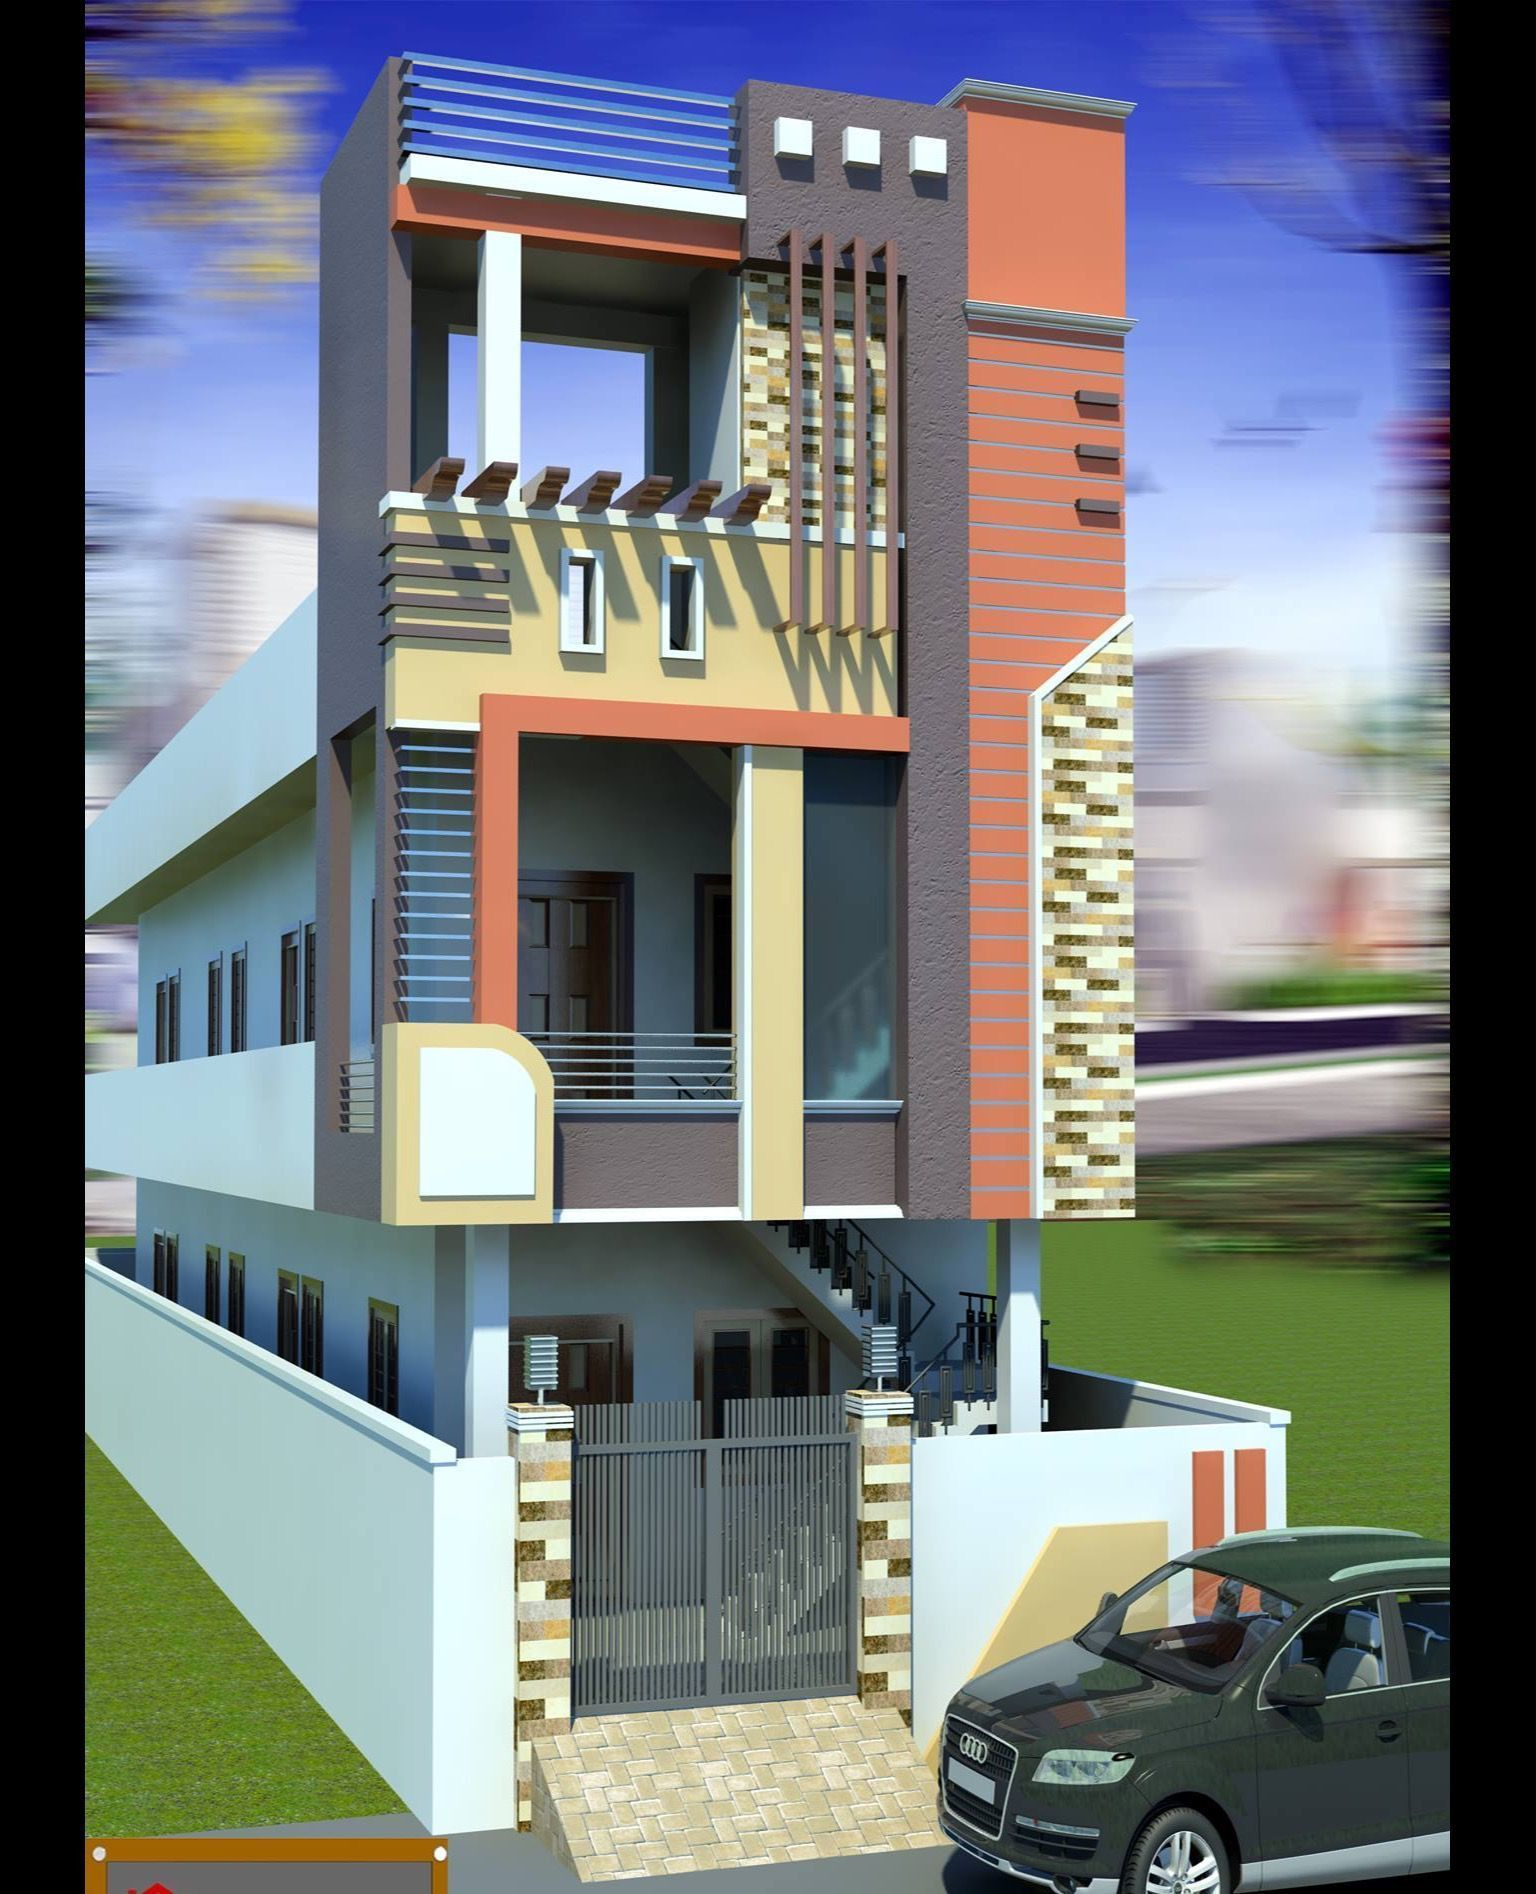 Front View House Designs Images 2020 in 2020 | Small house ...